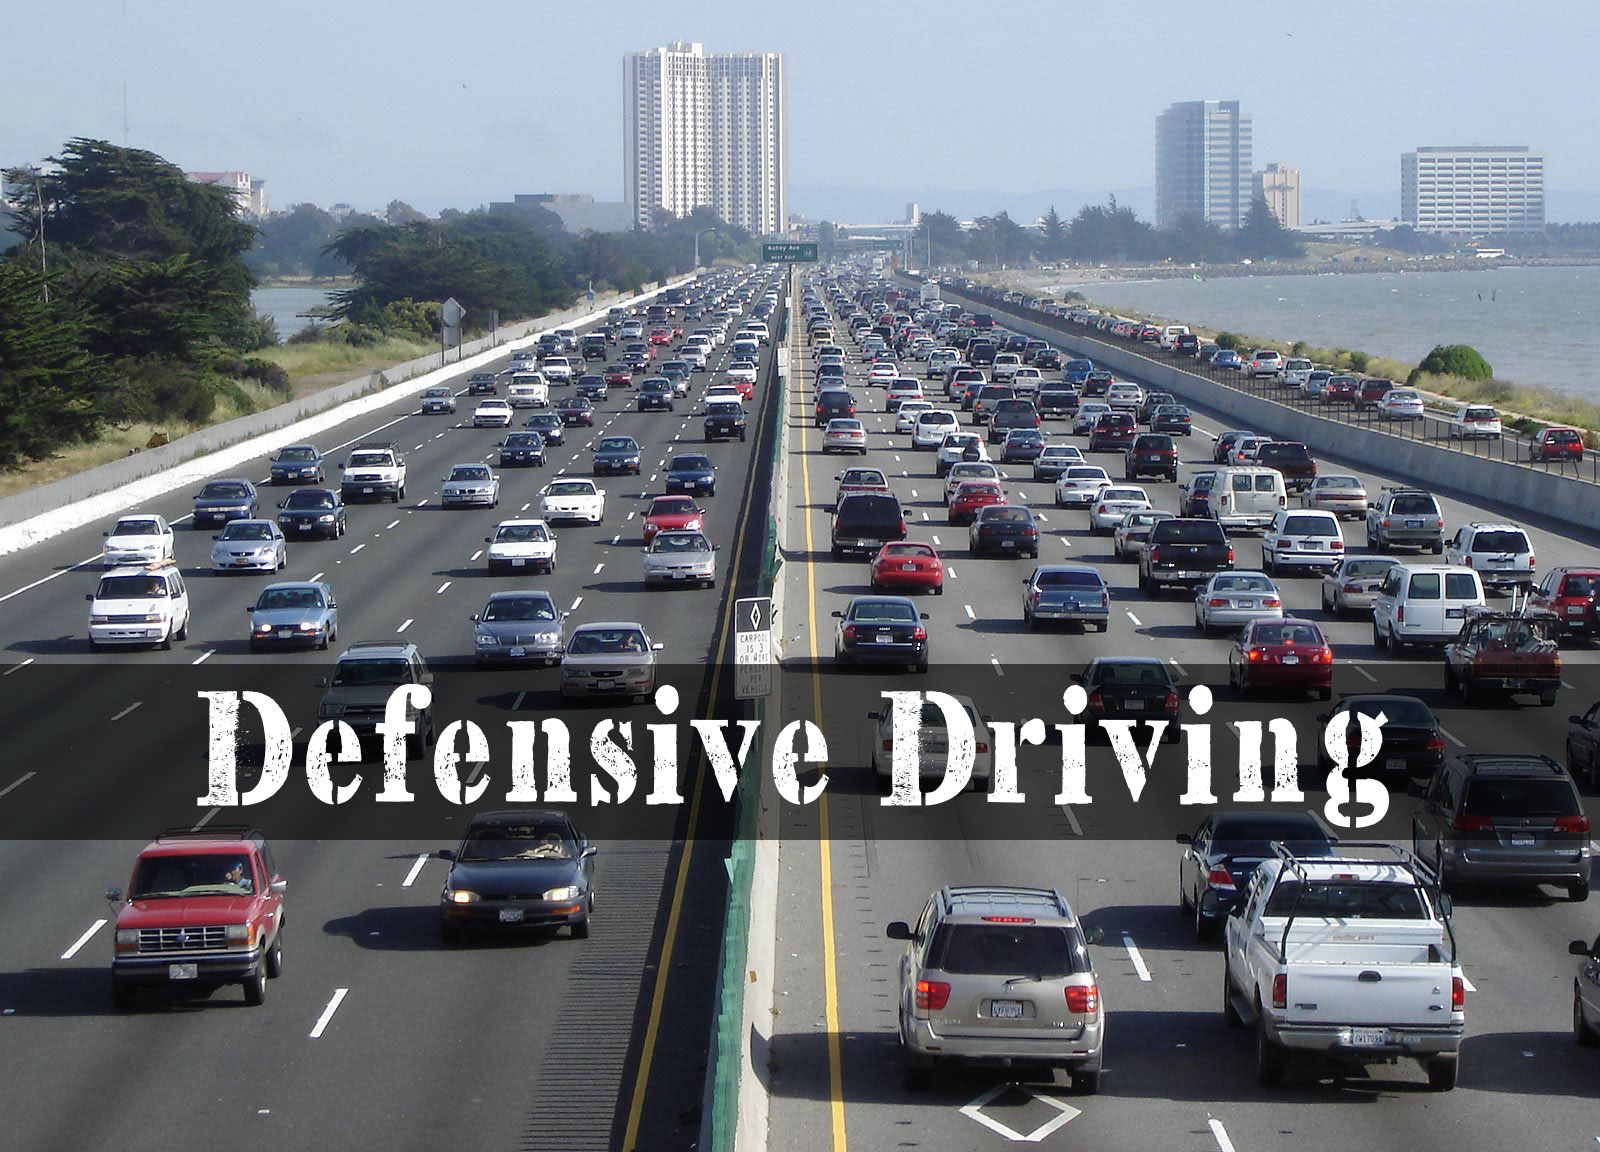 defensive driving essays Washington, dc online defensive driving traffic school for dc traffic tickets certified by the district of columbia dmv, we guarantee the lowest price on traffic school with free electronic reporting to the.